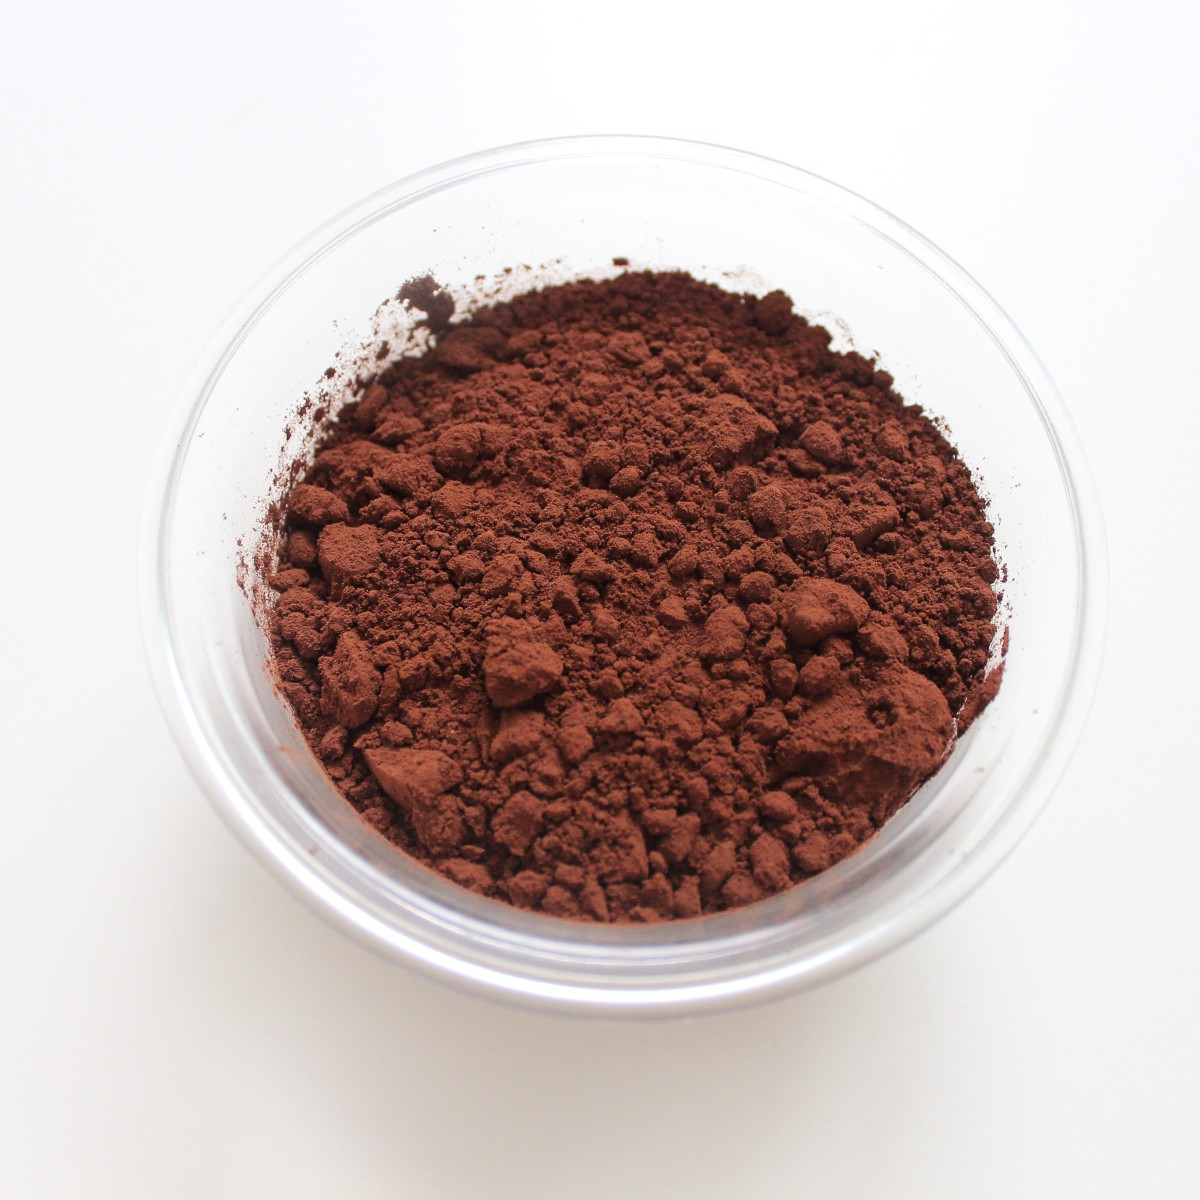 Cocoa powder containing flavonoids has health benefits.